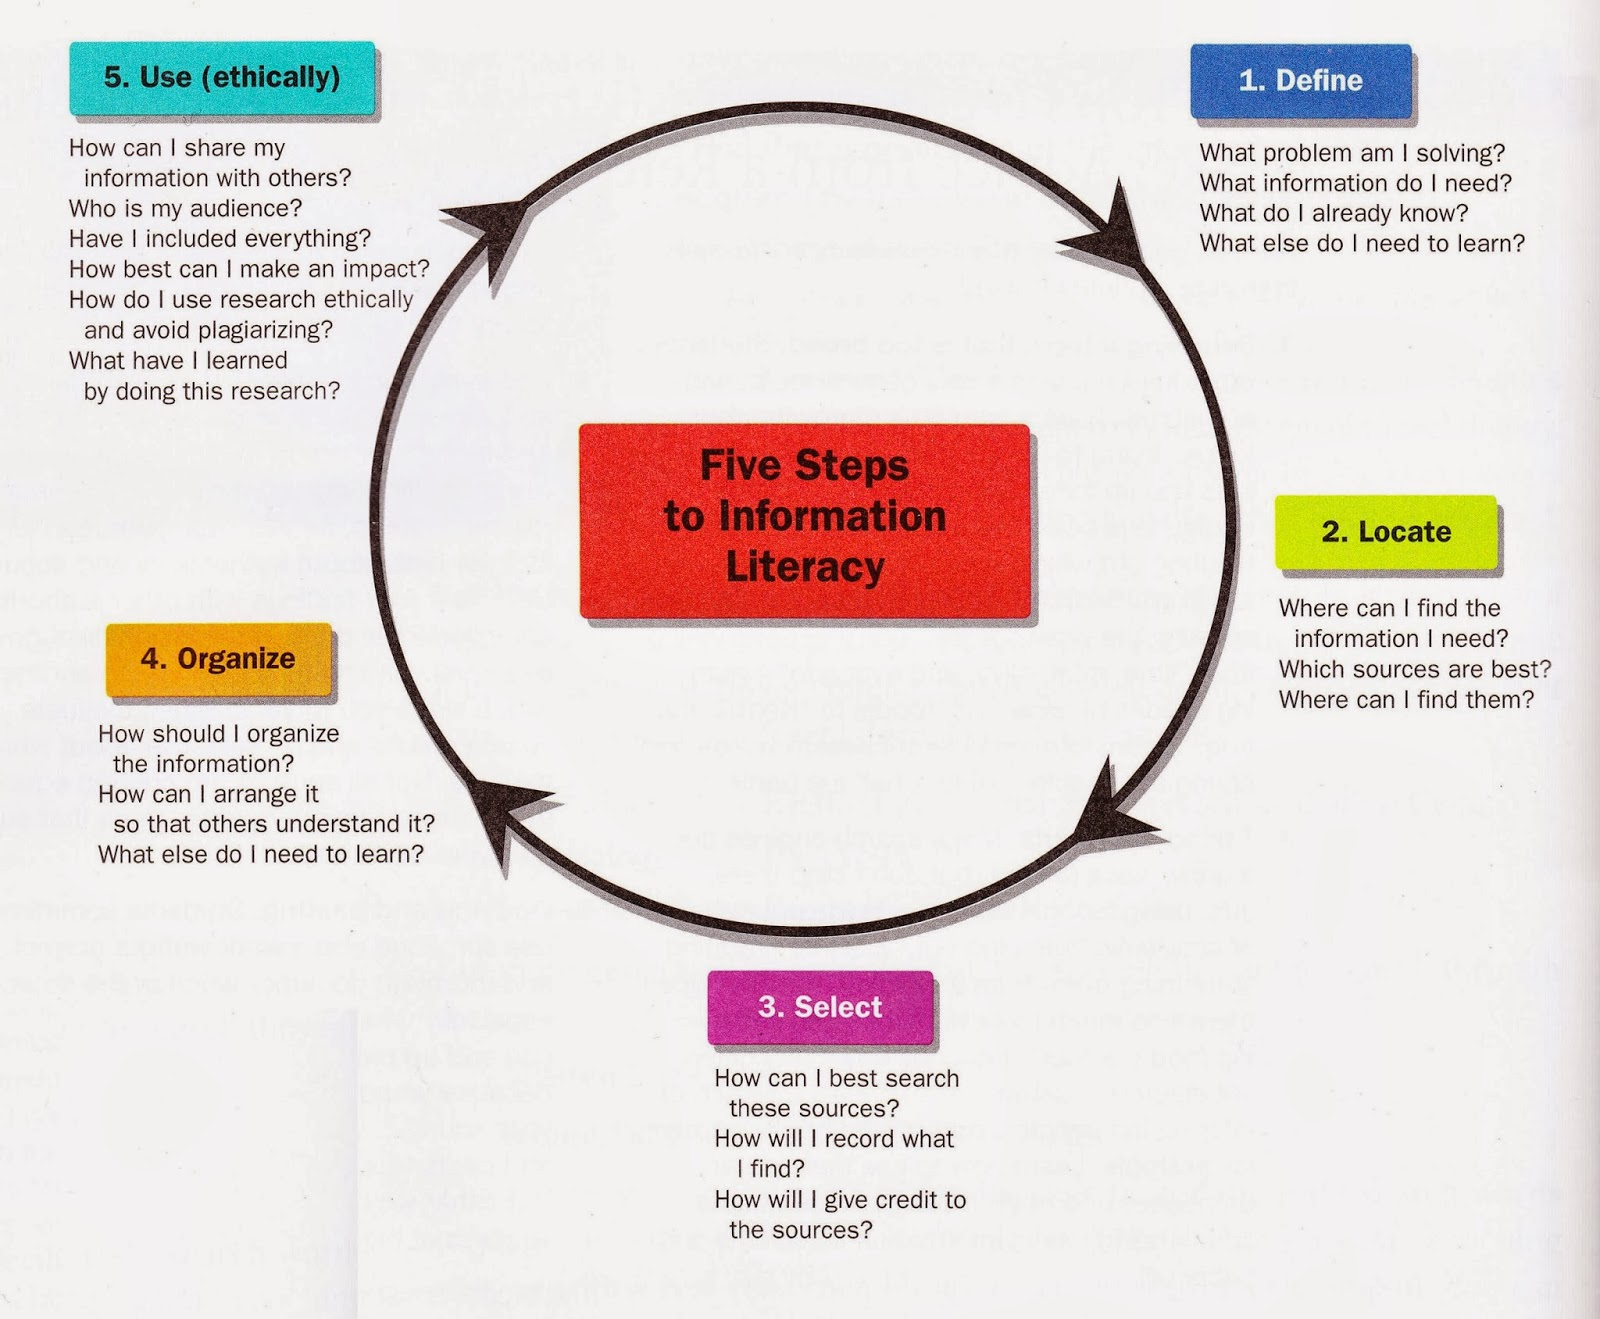 Five Steps to Information Literacy